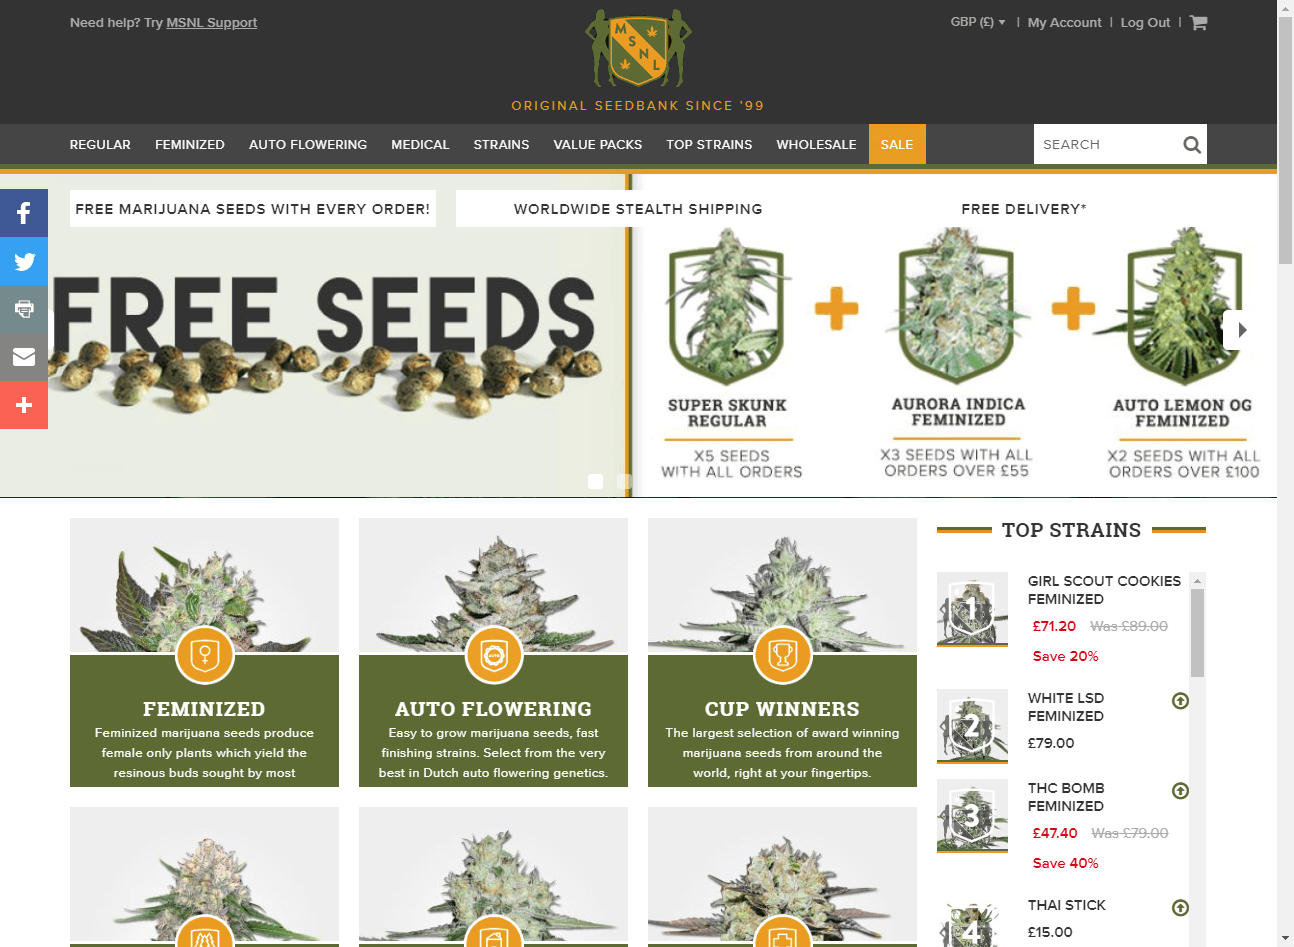 MSNL (Marijuana Seeds nl) website